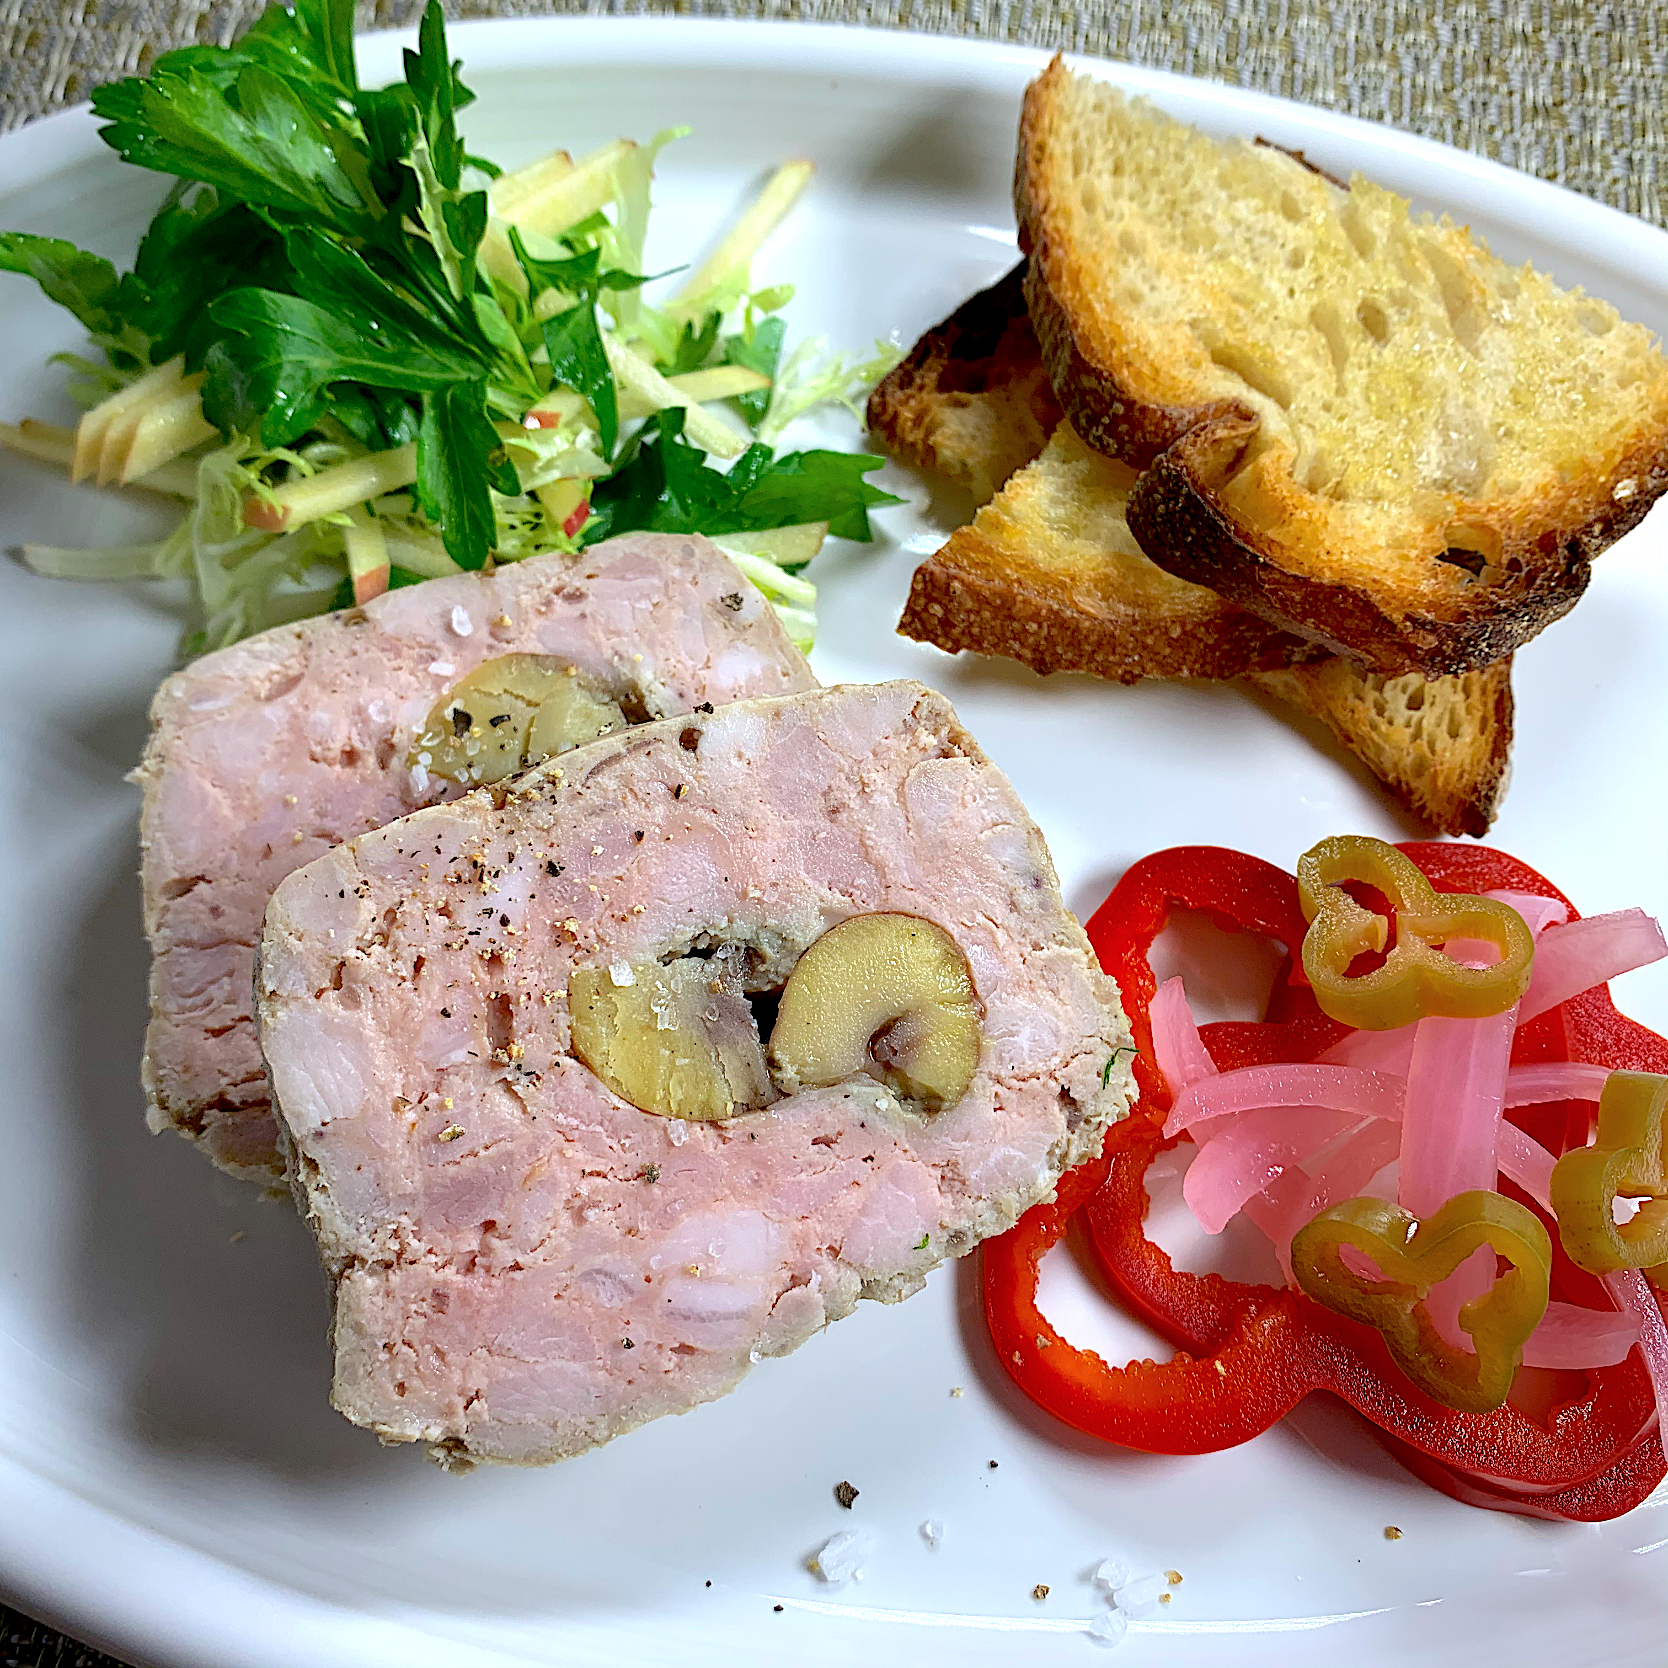 Pâté de Campagne with Chestnuts  & Homemade Pickles (栗の入った田舎風パテとパプリカのピクルス)